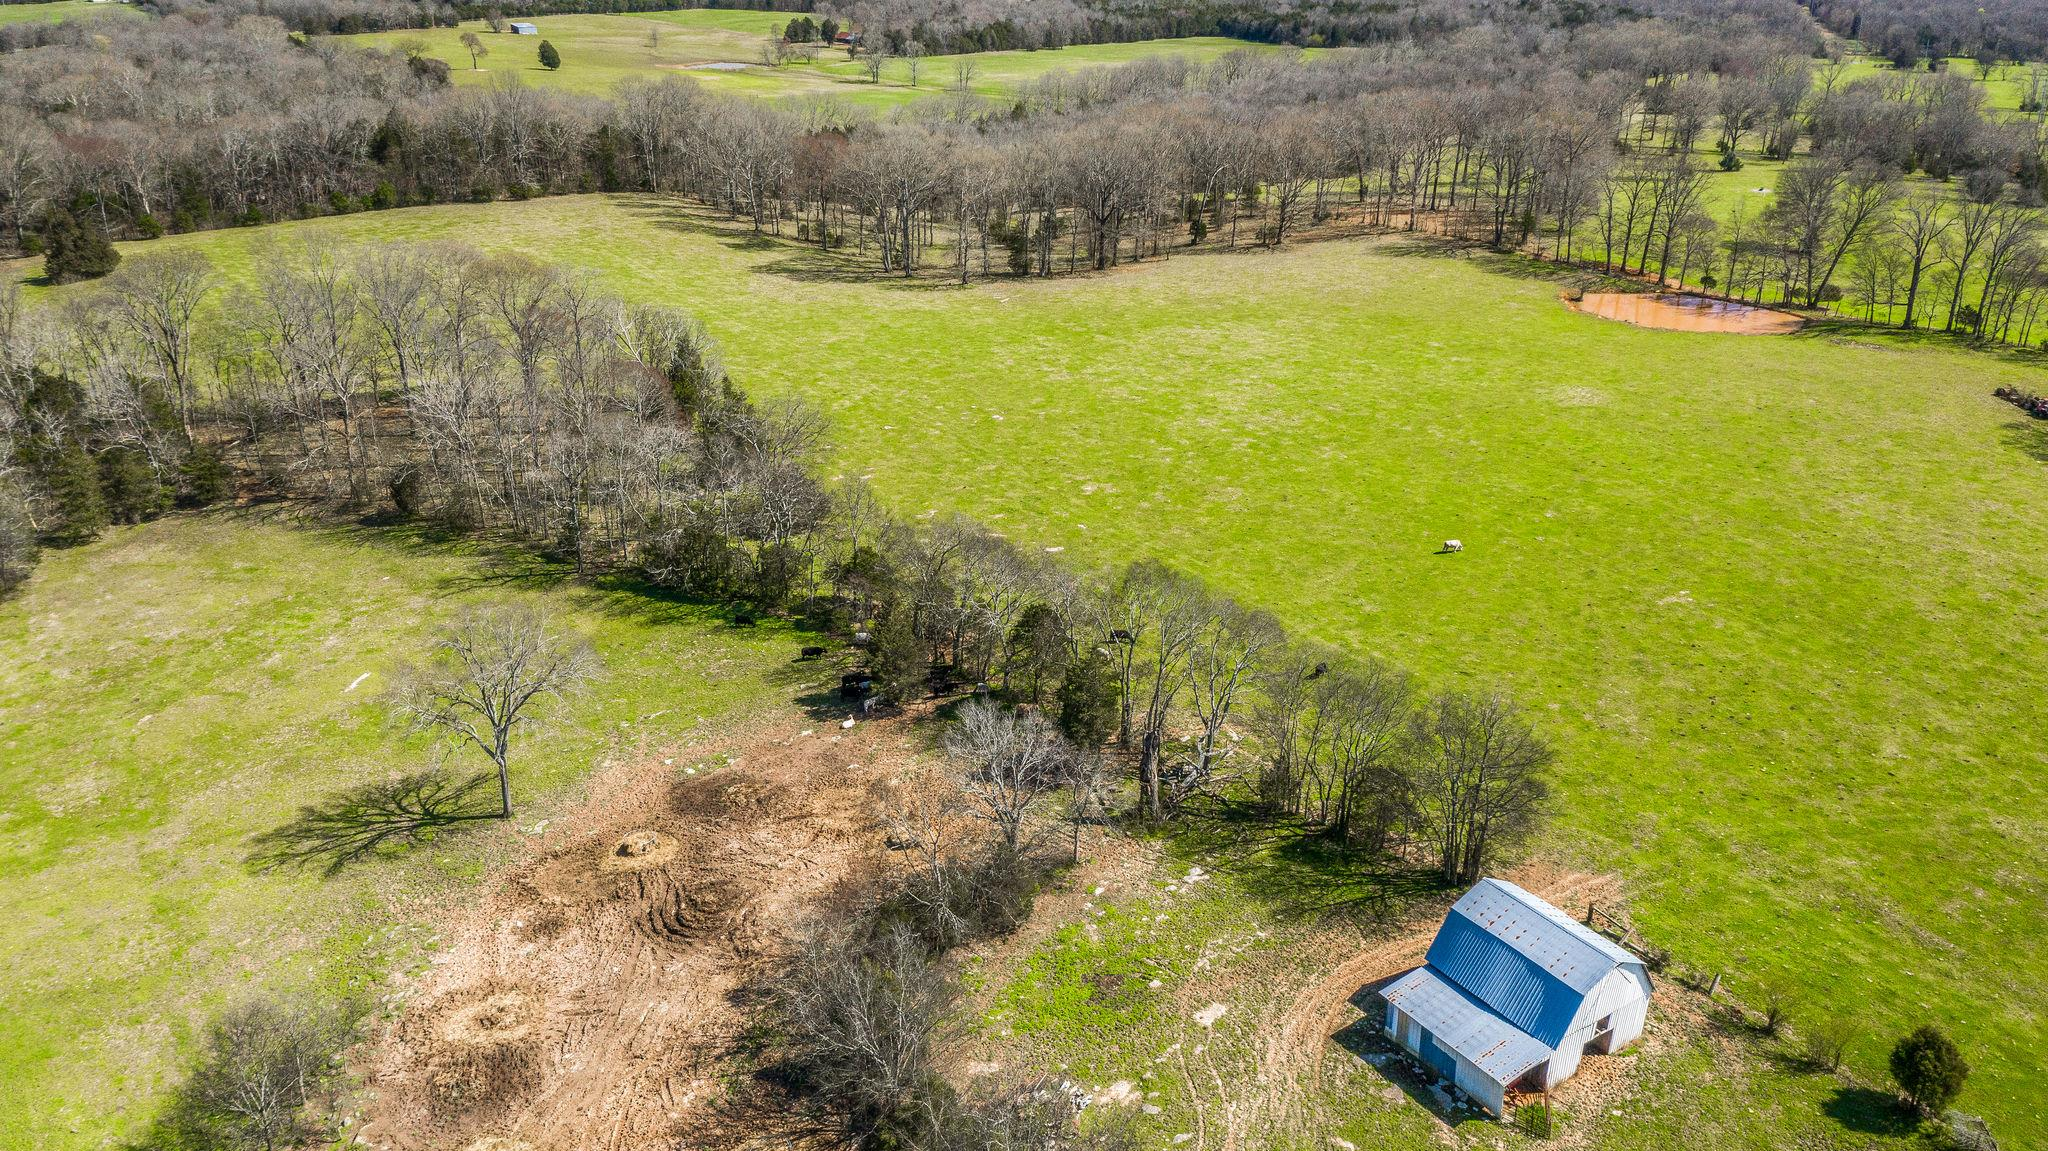 0 Dunnaway Rd, Shelbyville, TN 37160 - Shelbyville, TN real estate listing